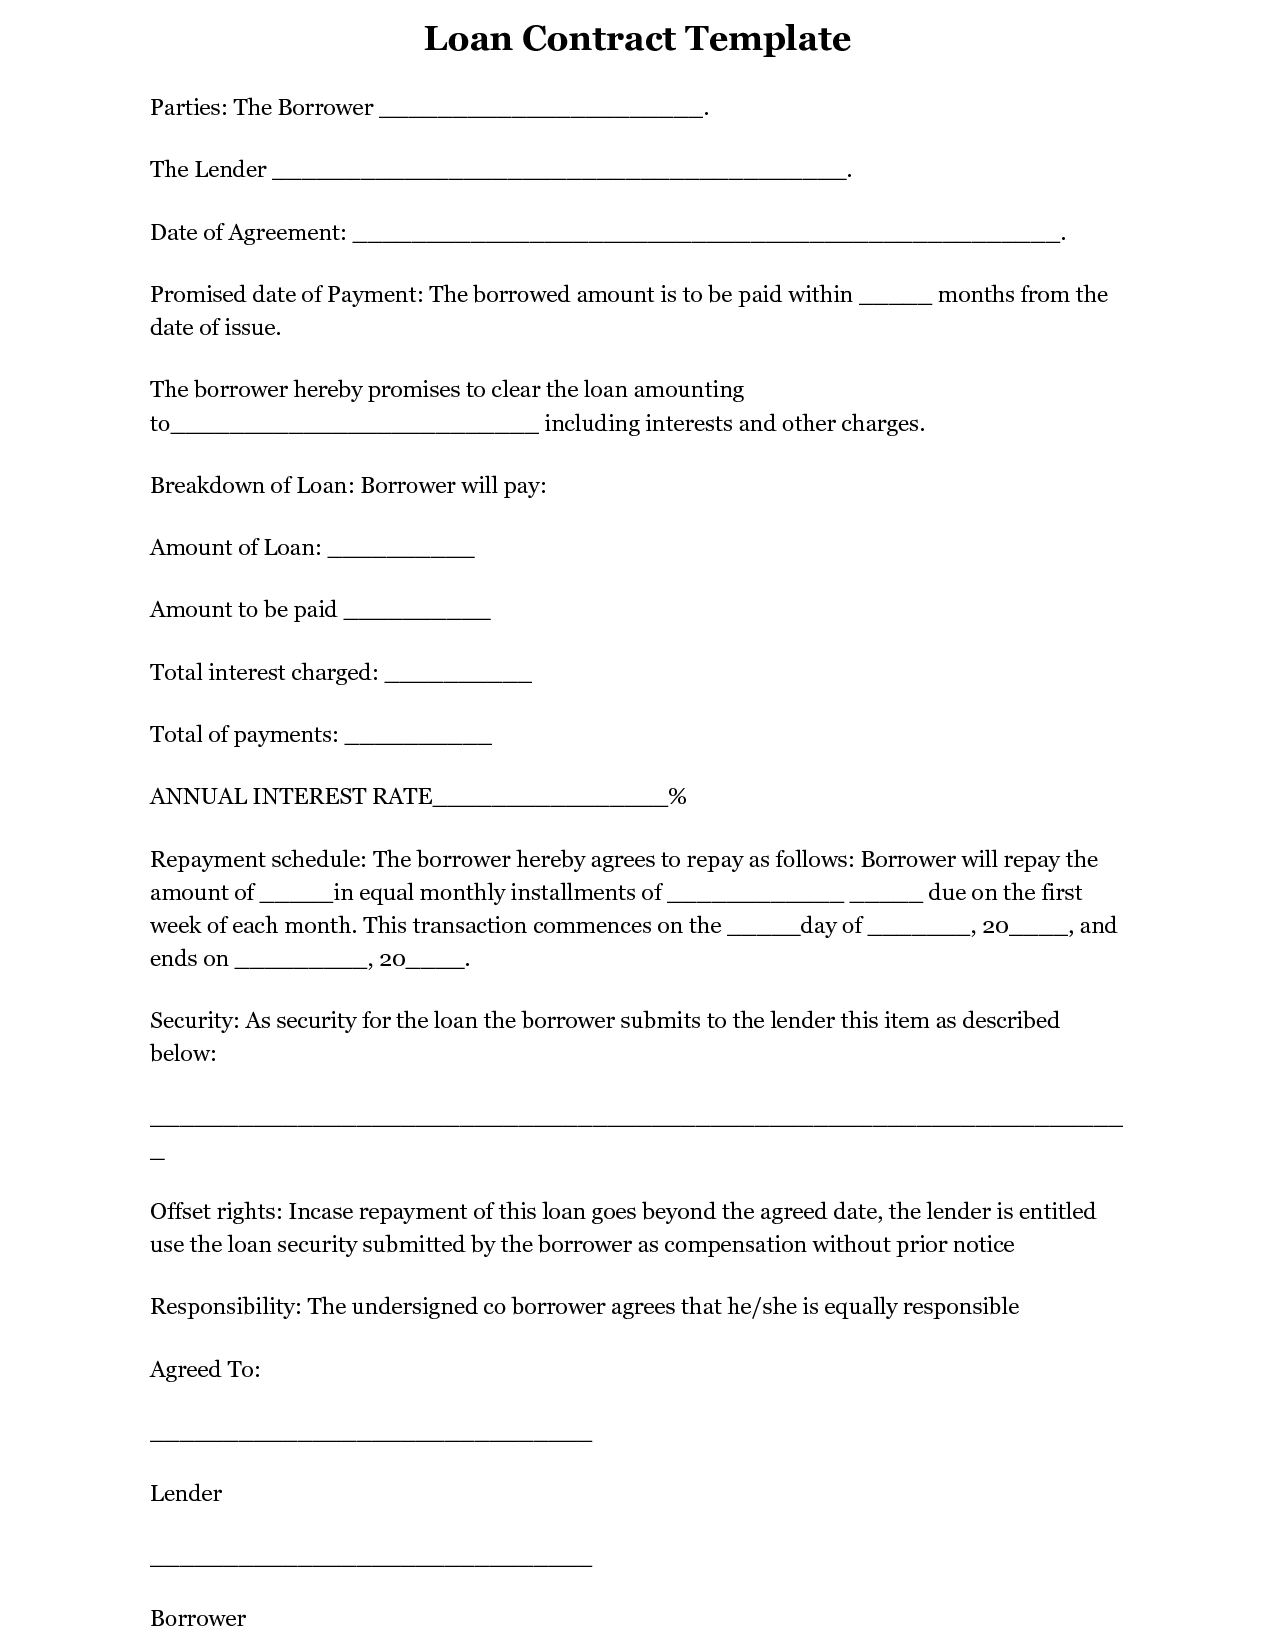 Captivating Simple Loan Agreement Form Free Loan Contract Template 26 Examples In Word  Pdf Free, Commercial Loan Agreement Template Loan Agreement Form Template,  ... Throughout Free Loan Document Template